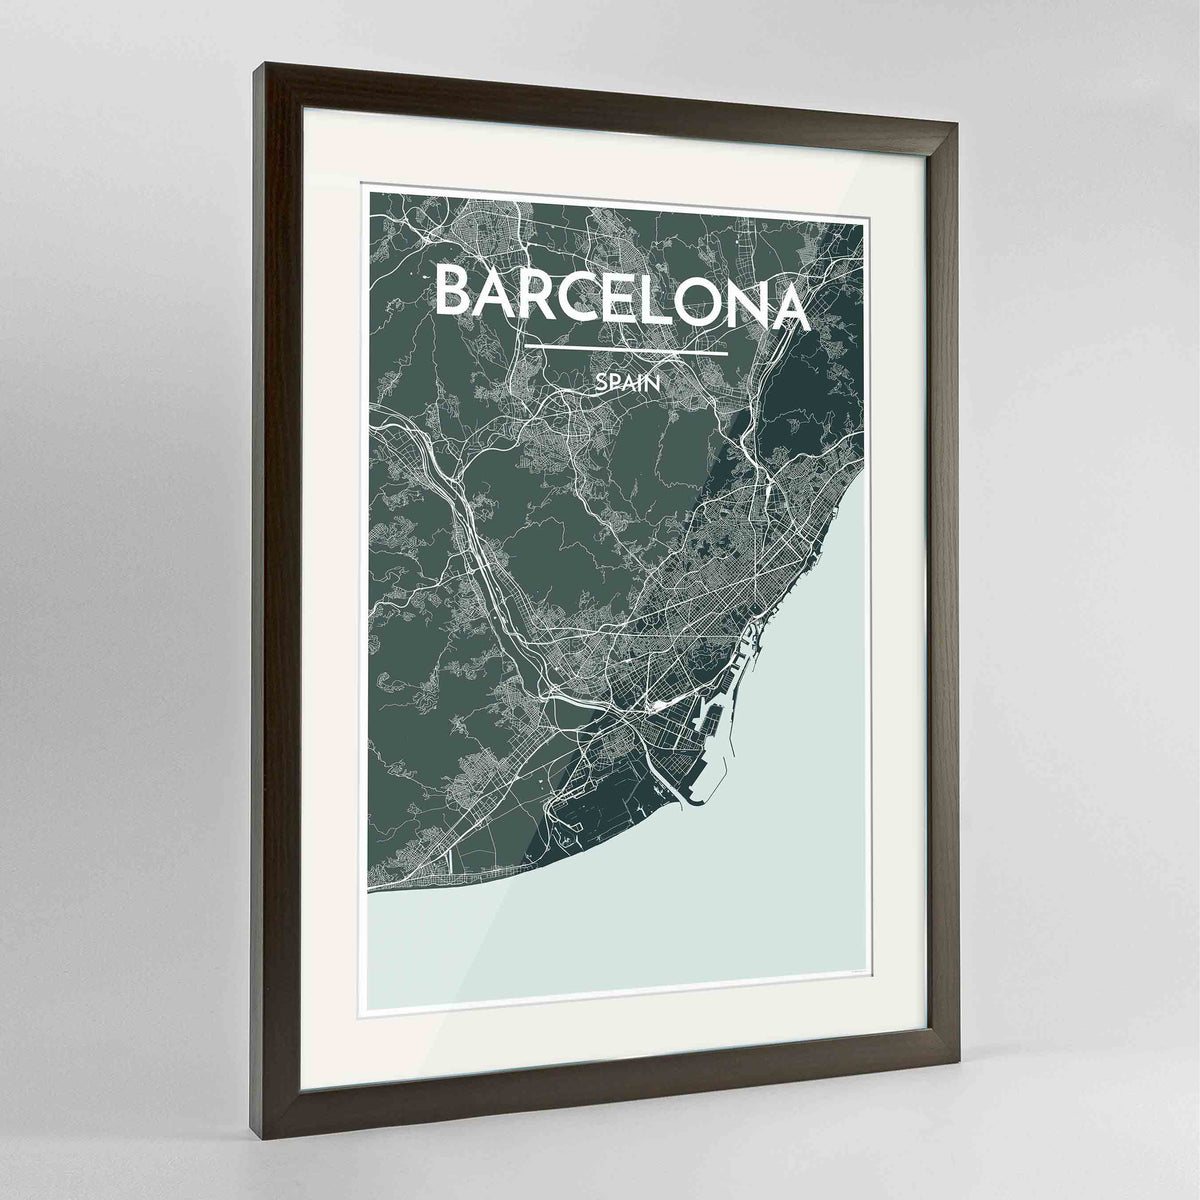 "Framed Barcelona Map Art Print 24x36"" Contemporary Walnut frame Point Two Design Group"